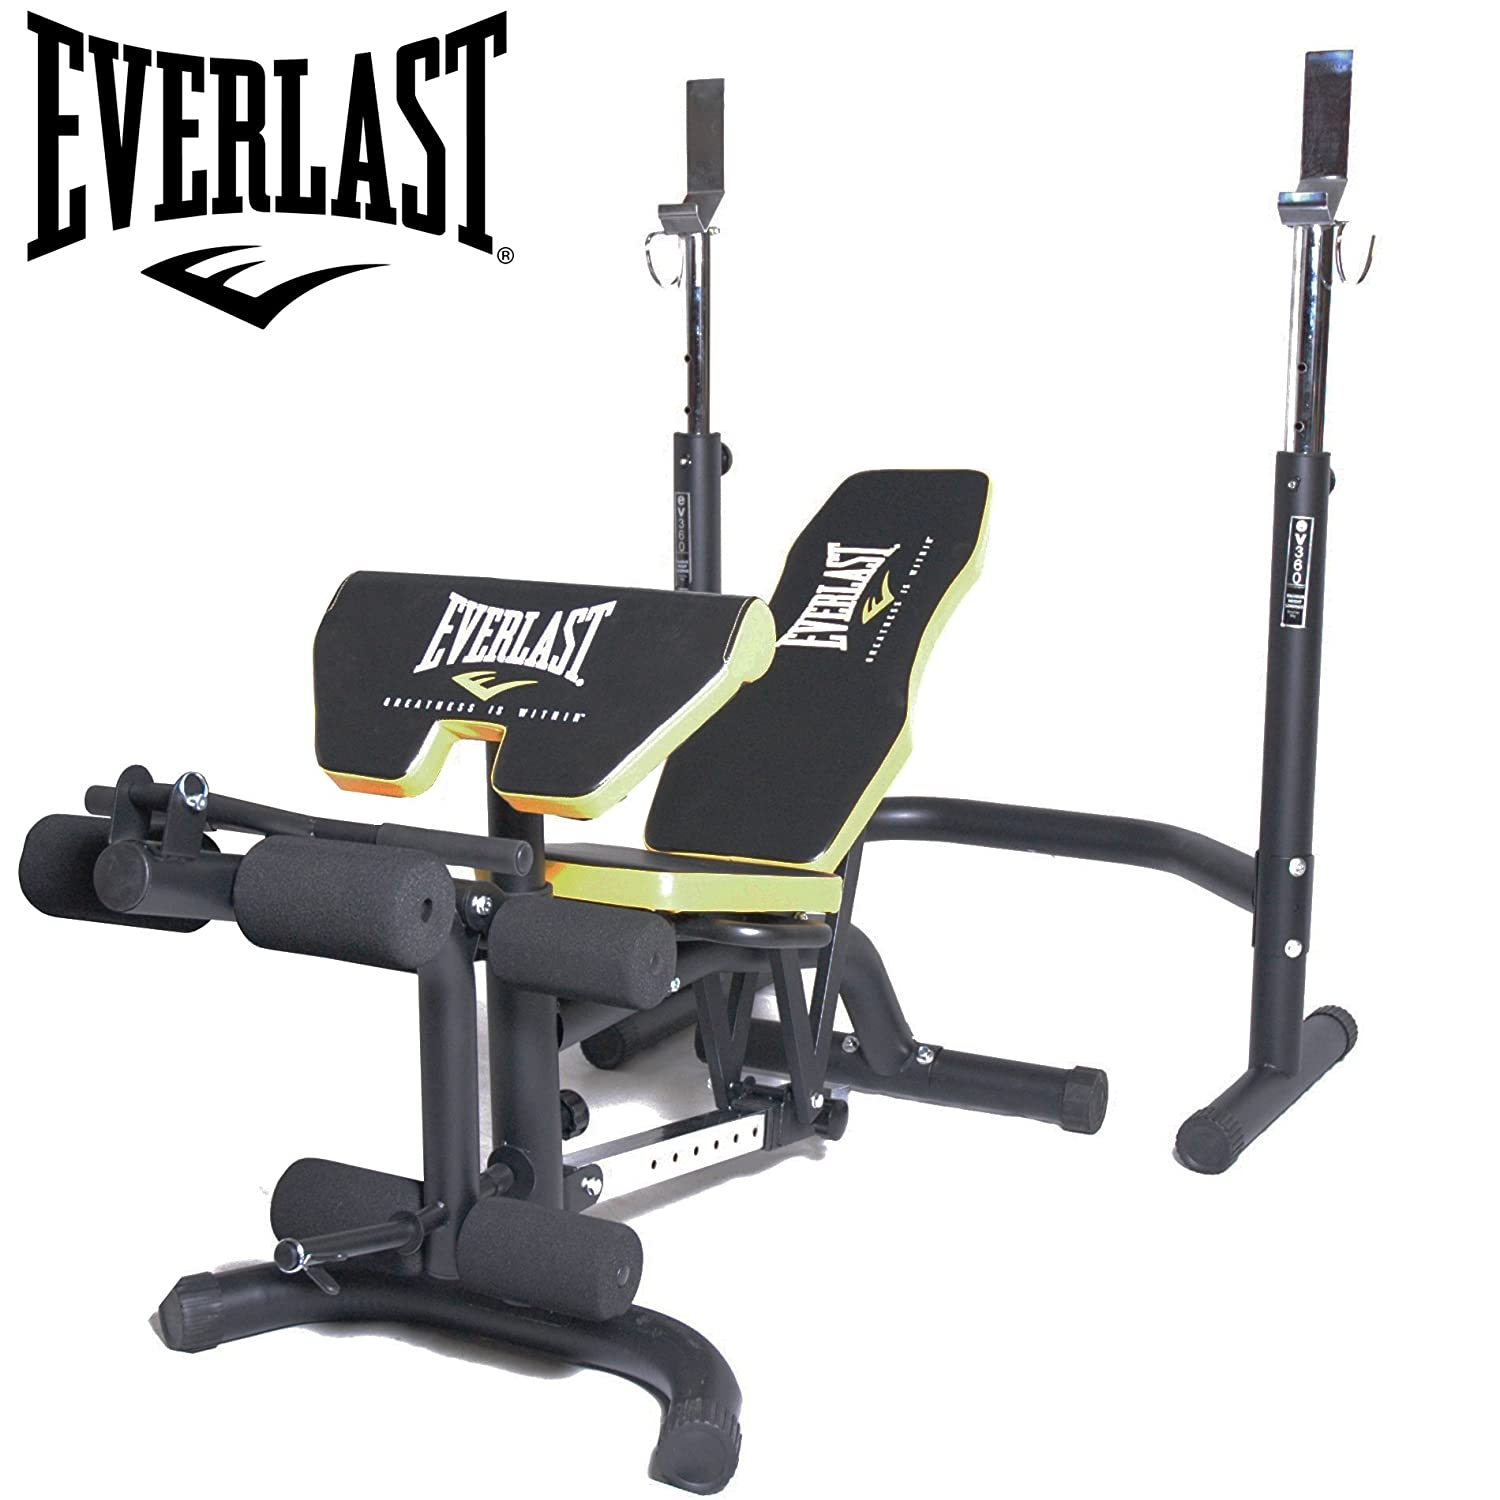 Everlast Olympic Weight Bench Squat Rack Cosmecol